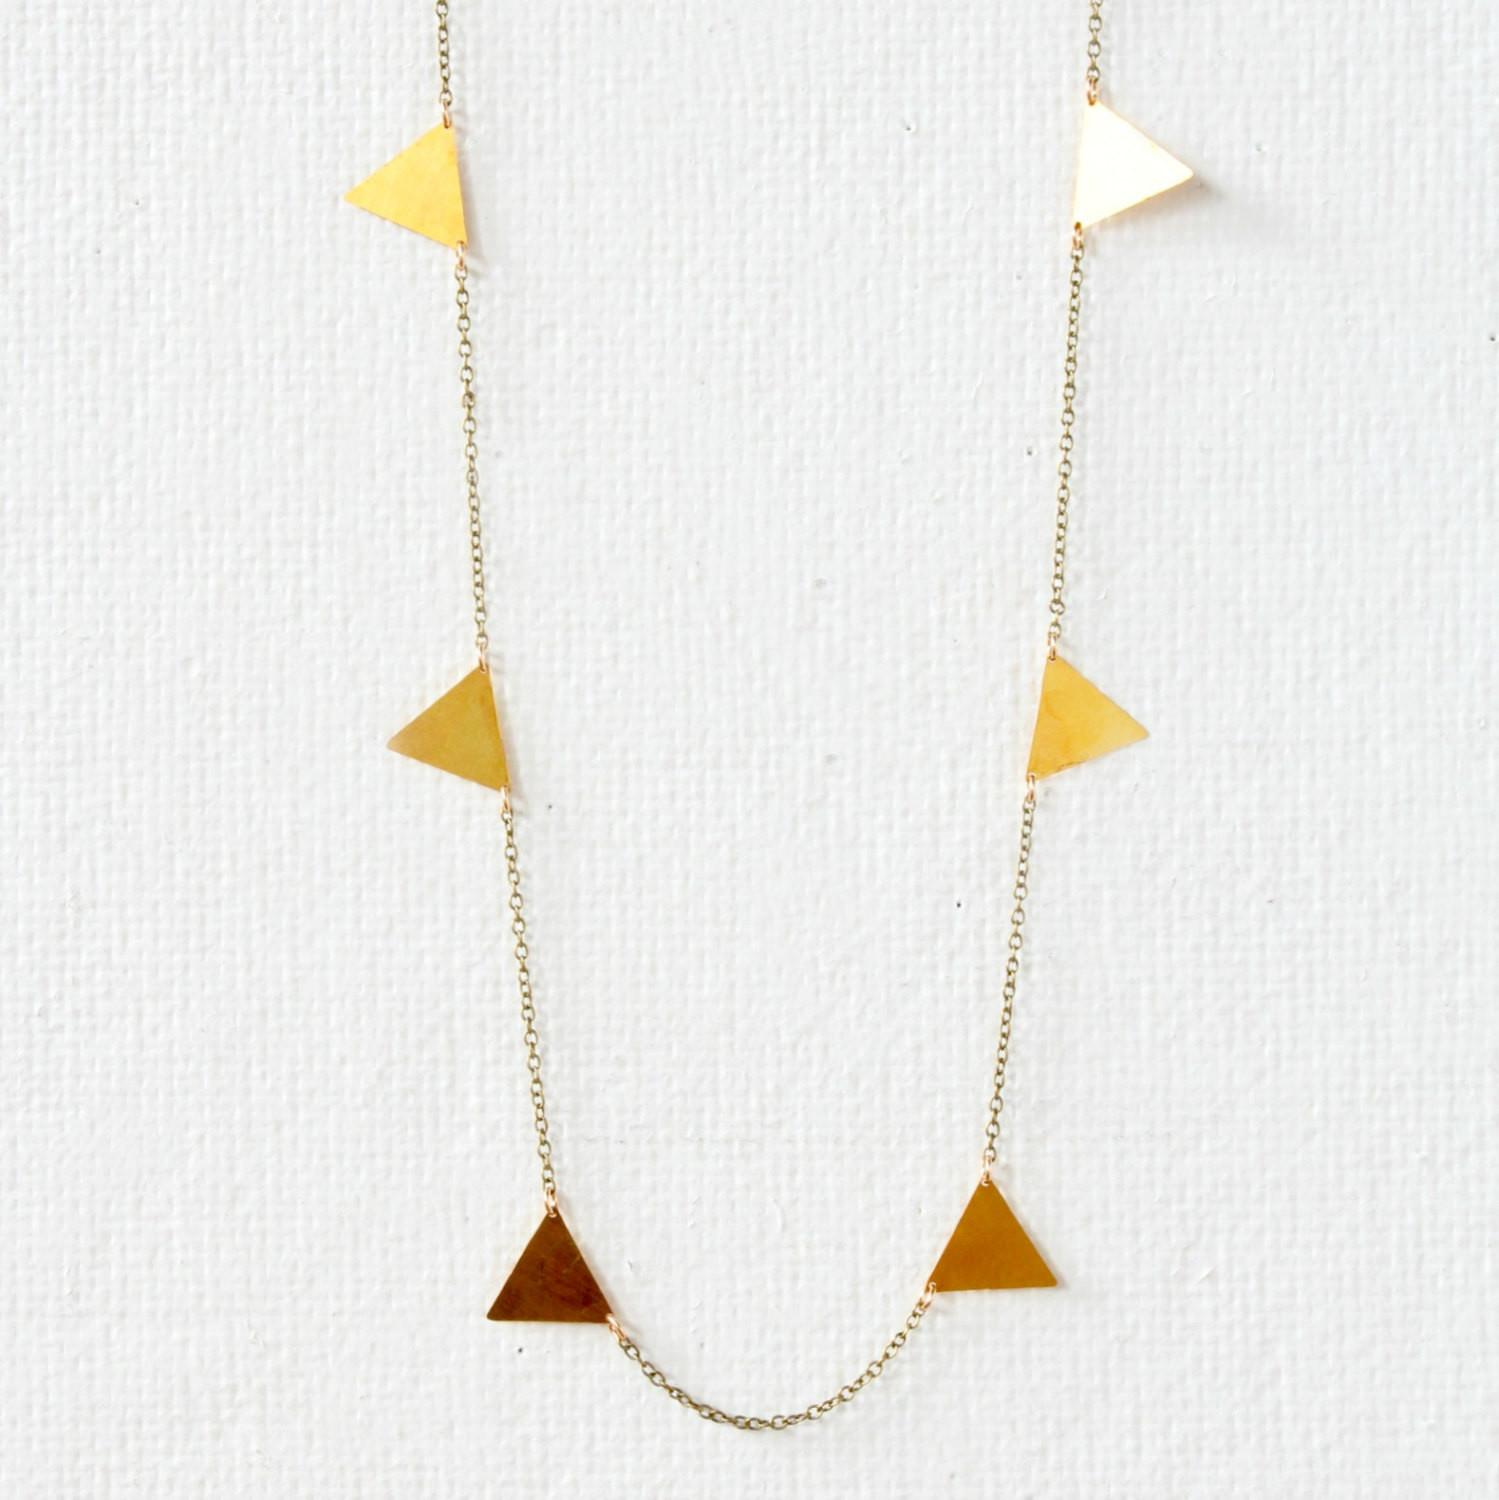 Golden Triangle Necklace Geometric Gold Charm